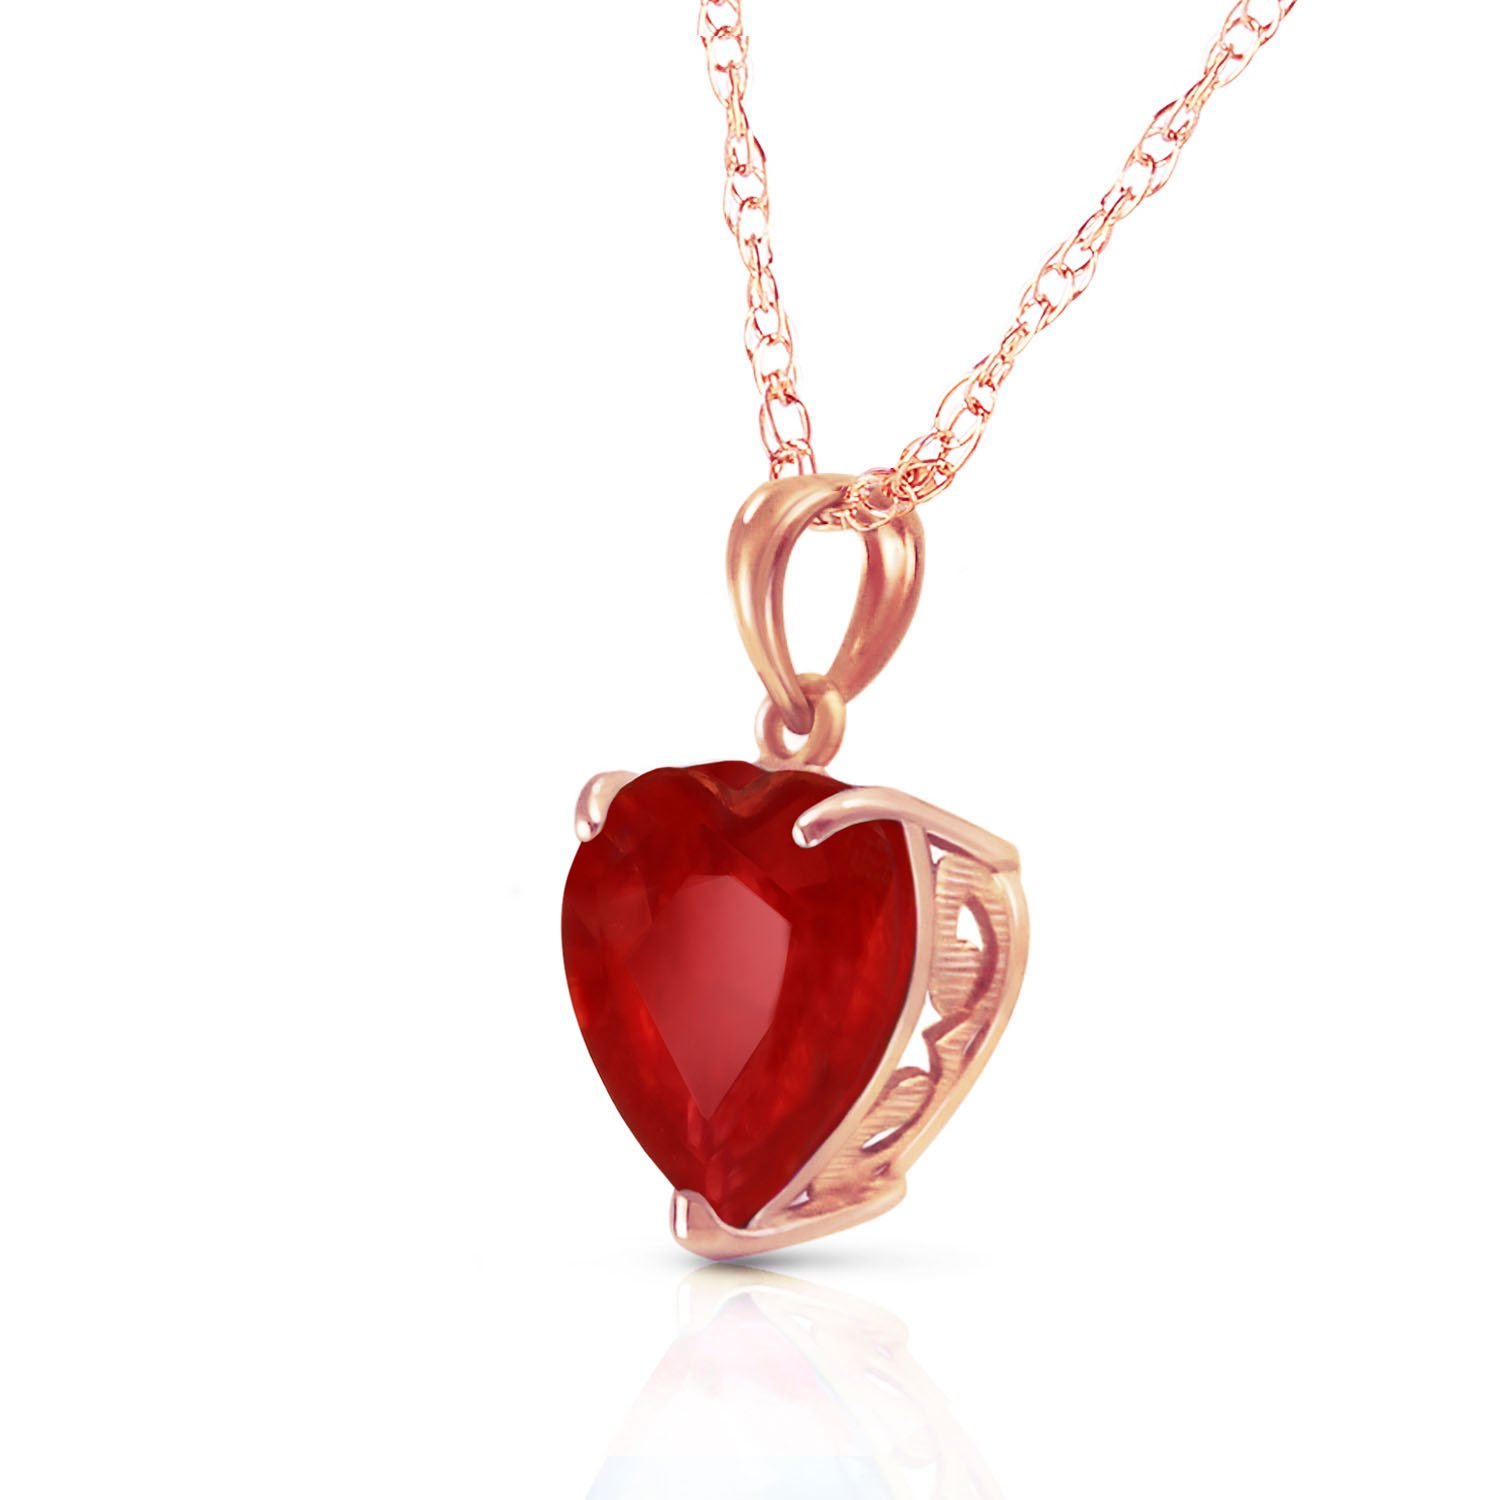 14k Solid White, Yellow, Rose Gold Necklace with Heart Shaped 10 mm 4.3 Carat Natural Red Ruby 5662 (16.00, Rose-Gold)